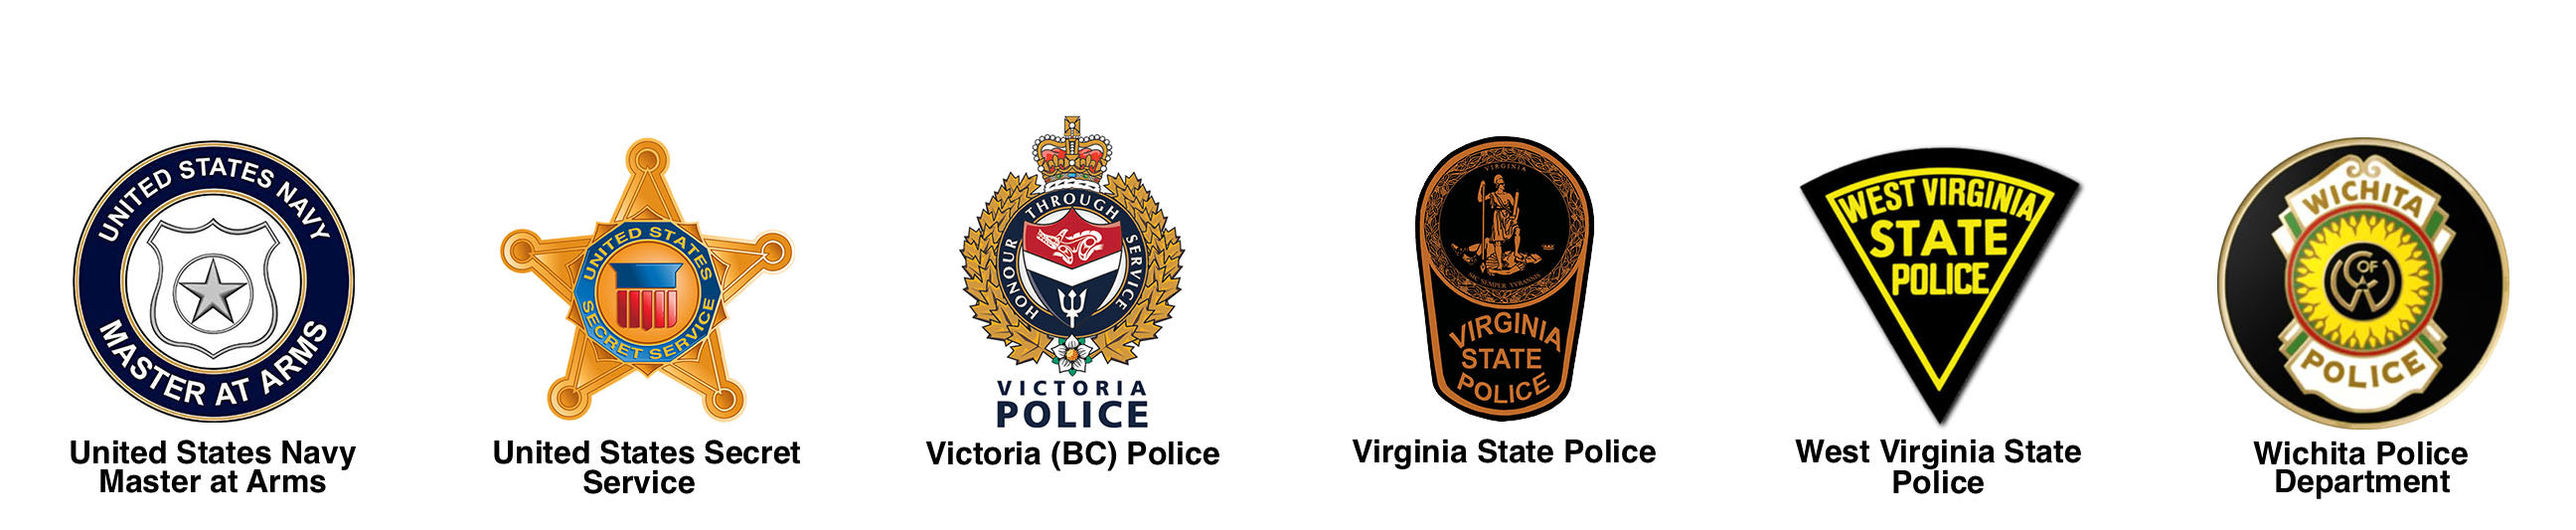 United States Navy Masters at Arms, United States Secret Service, Victoria (BC) Police, Virginia State Patrol, West Virginia State Patrol, Wichita PD